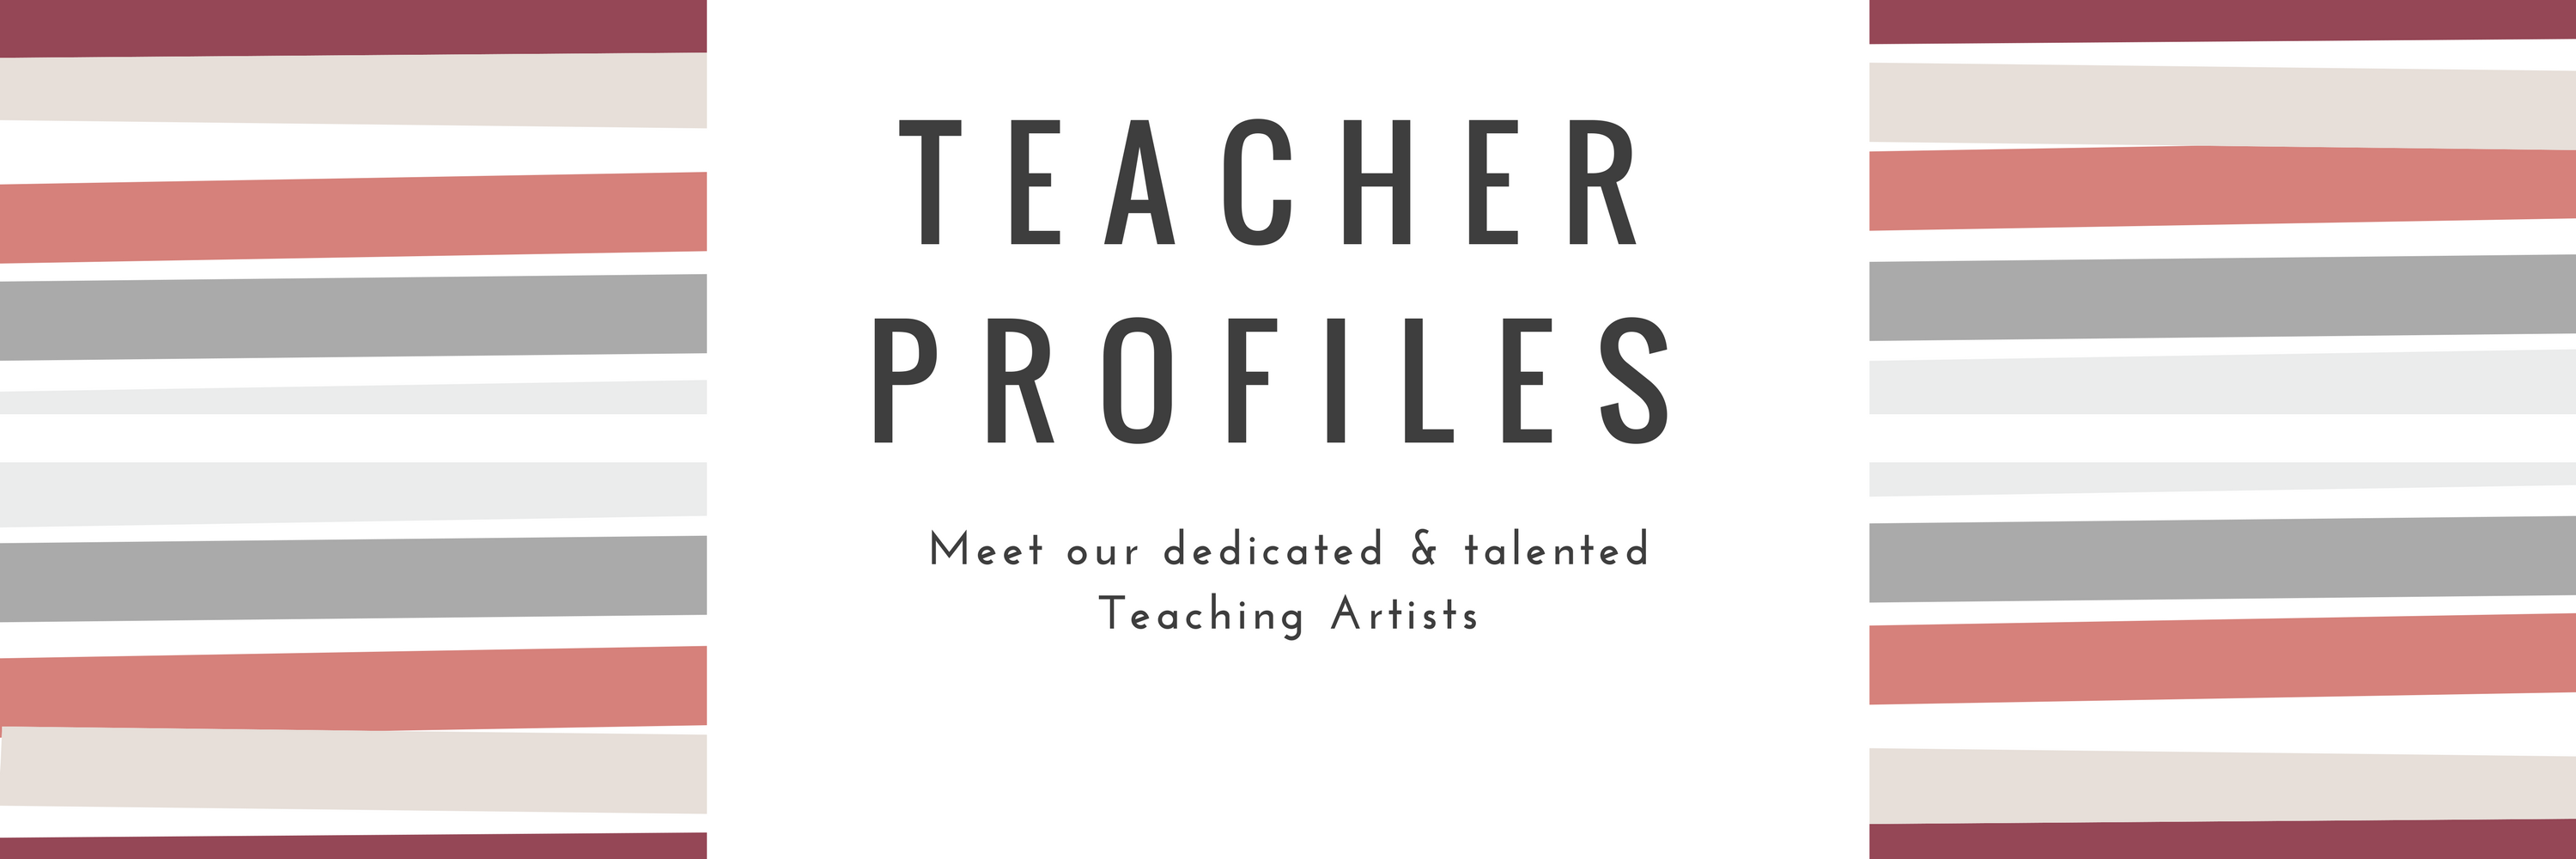 Teacher Profile banner for FACP.org